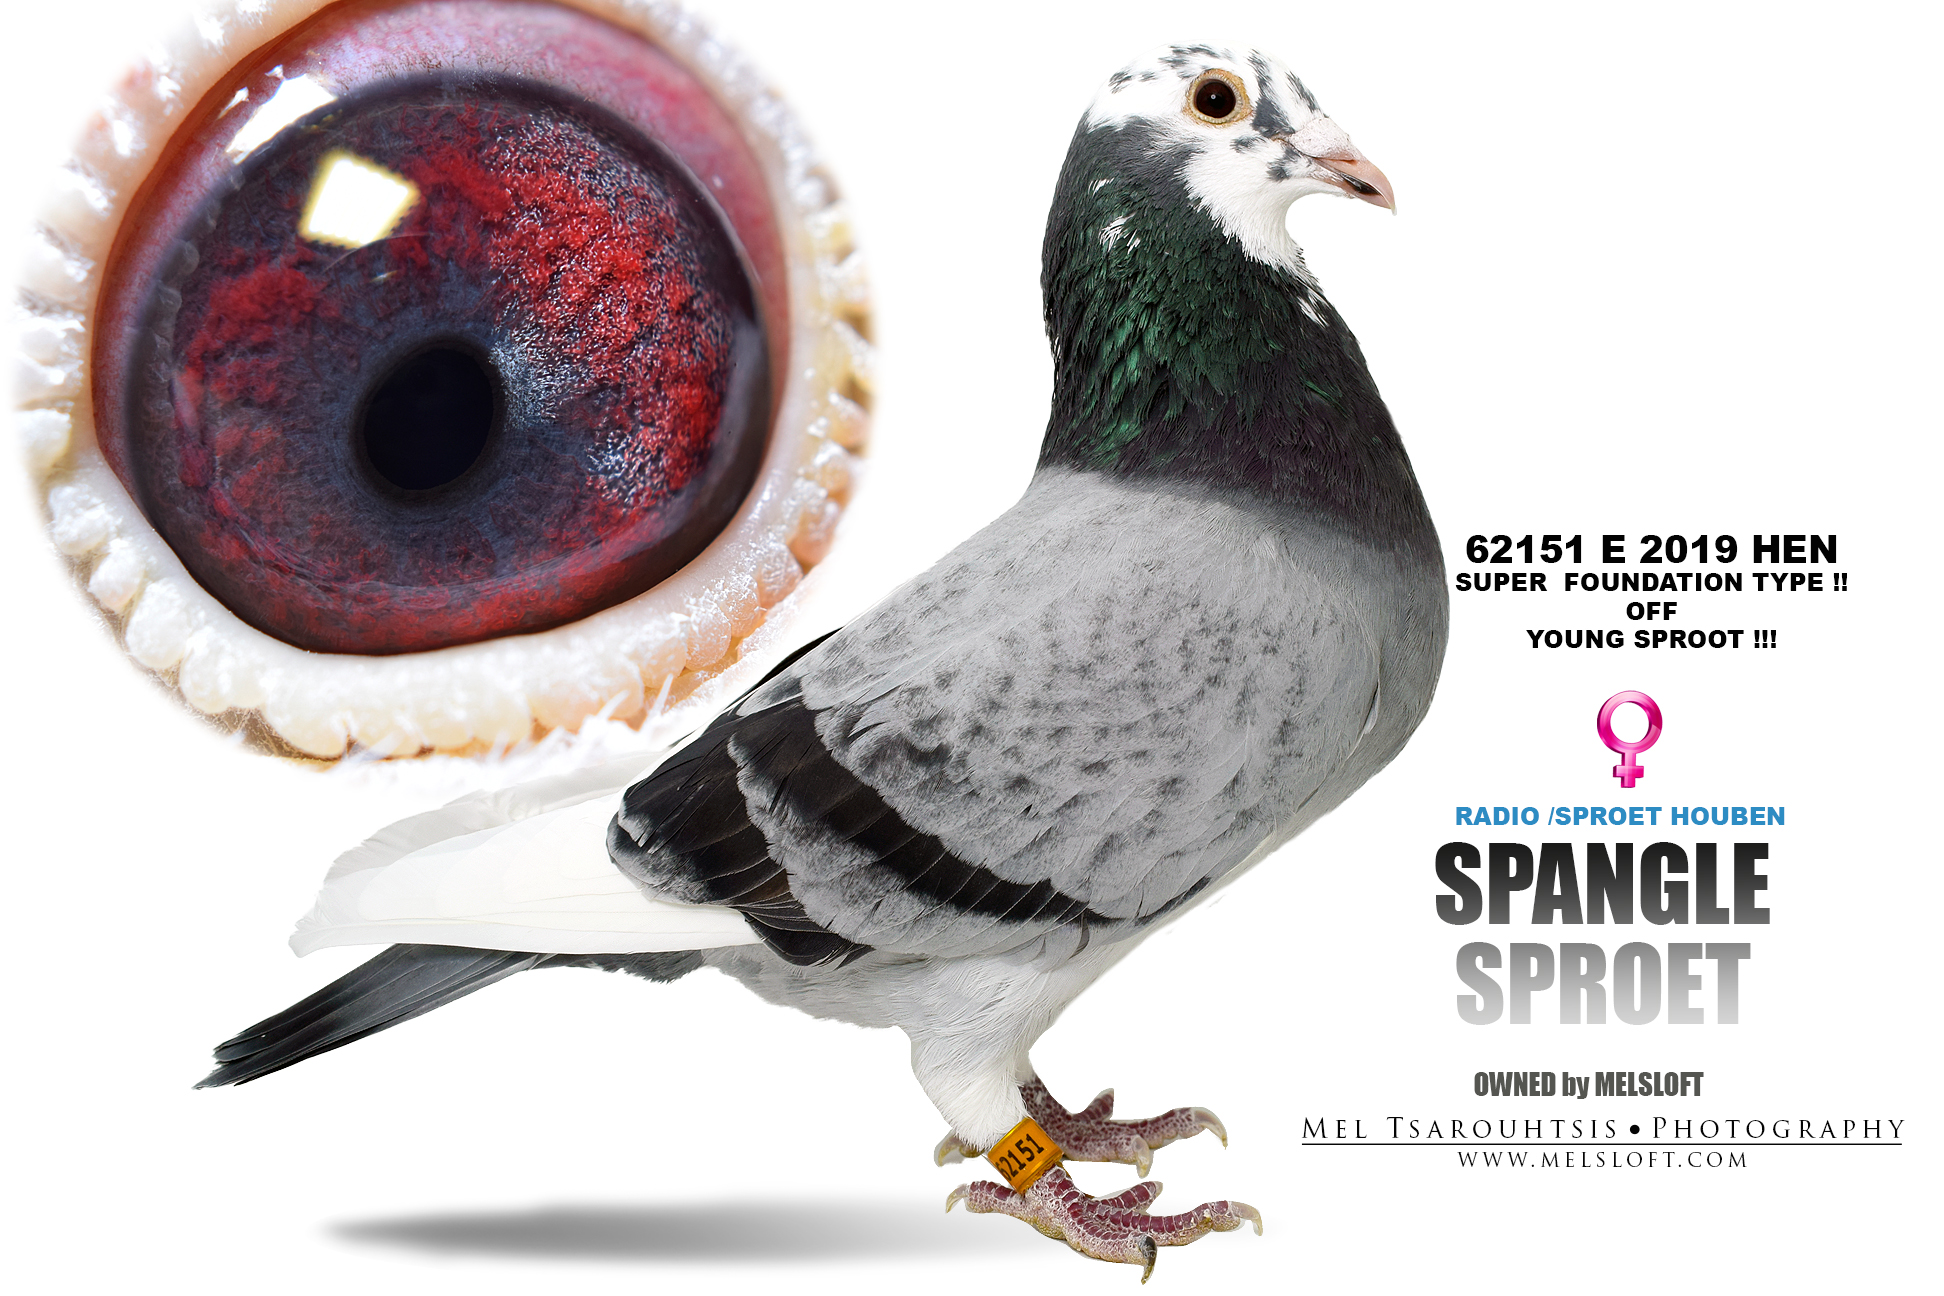 "2019 E 62151 PENCIL SPLASH HEN ""SPANGLE SPROET"" RADIO HOUBEN"